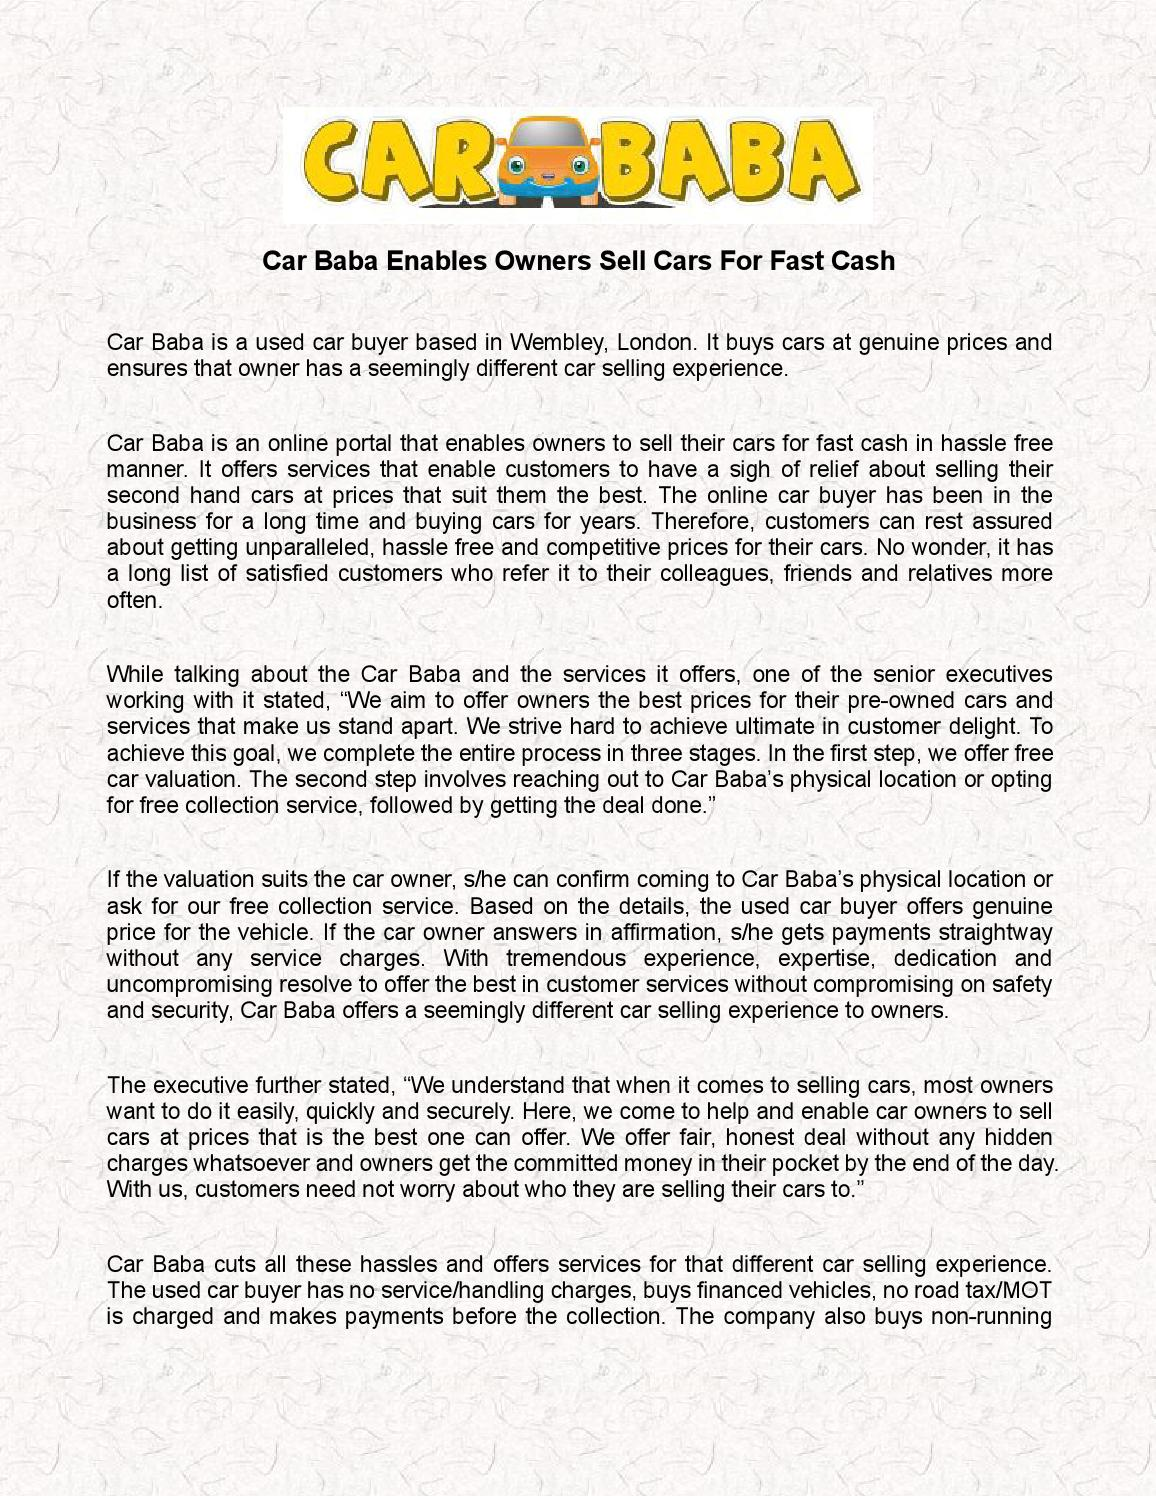 Car baba enables owners sell cars for fast cash by carbaba - issuu